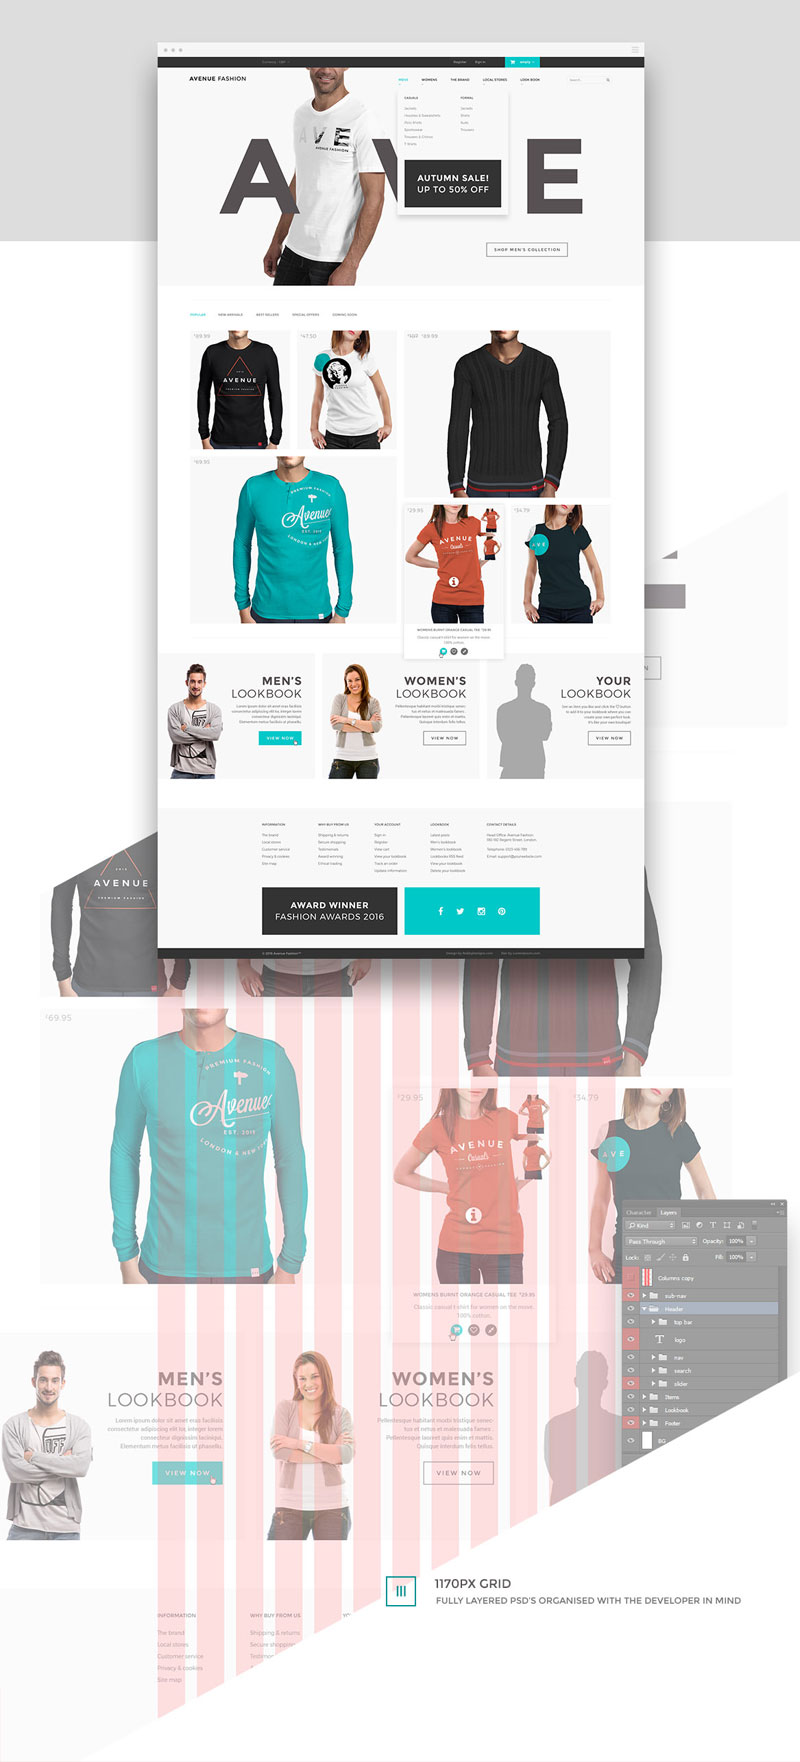 Ave-FREE-Ecommerce-Website-Template-PSD